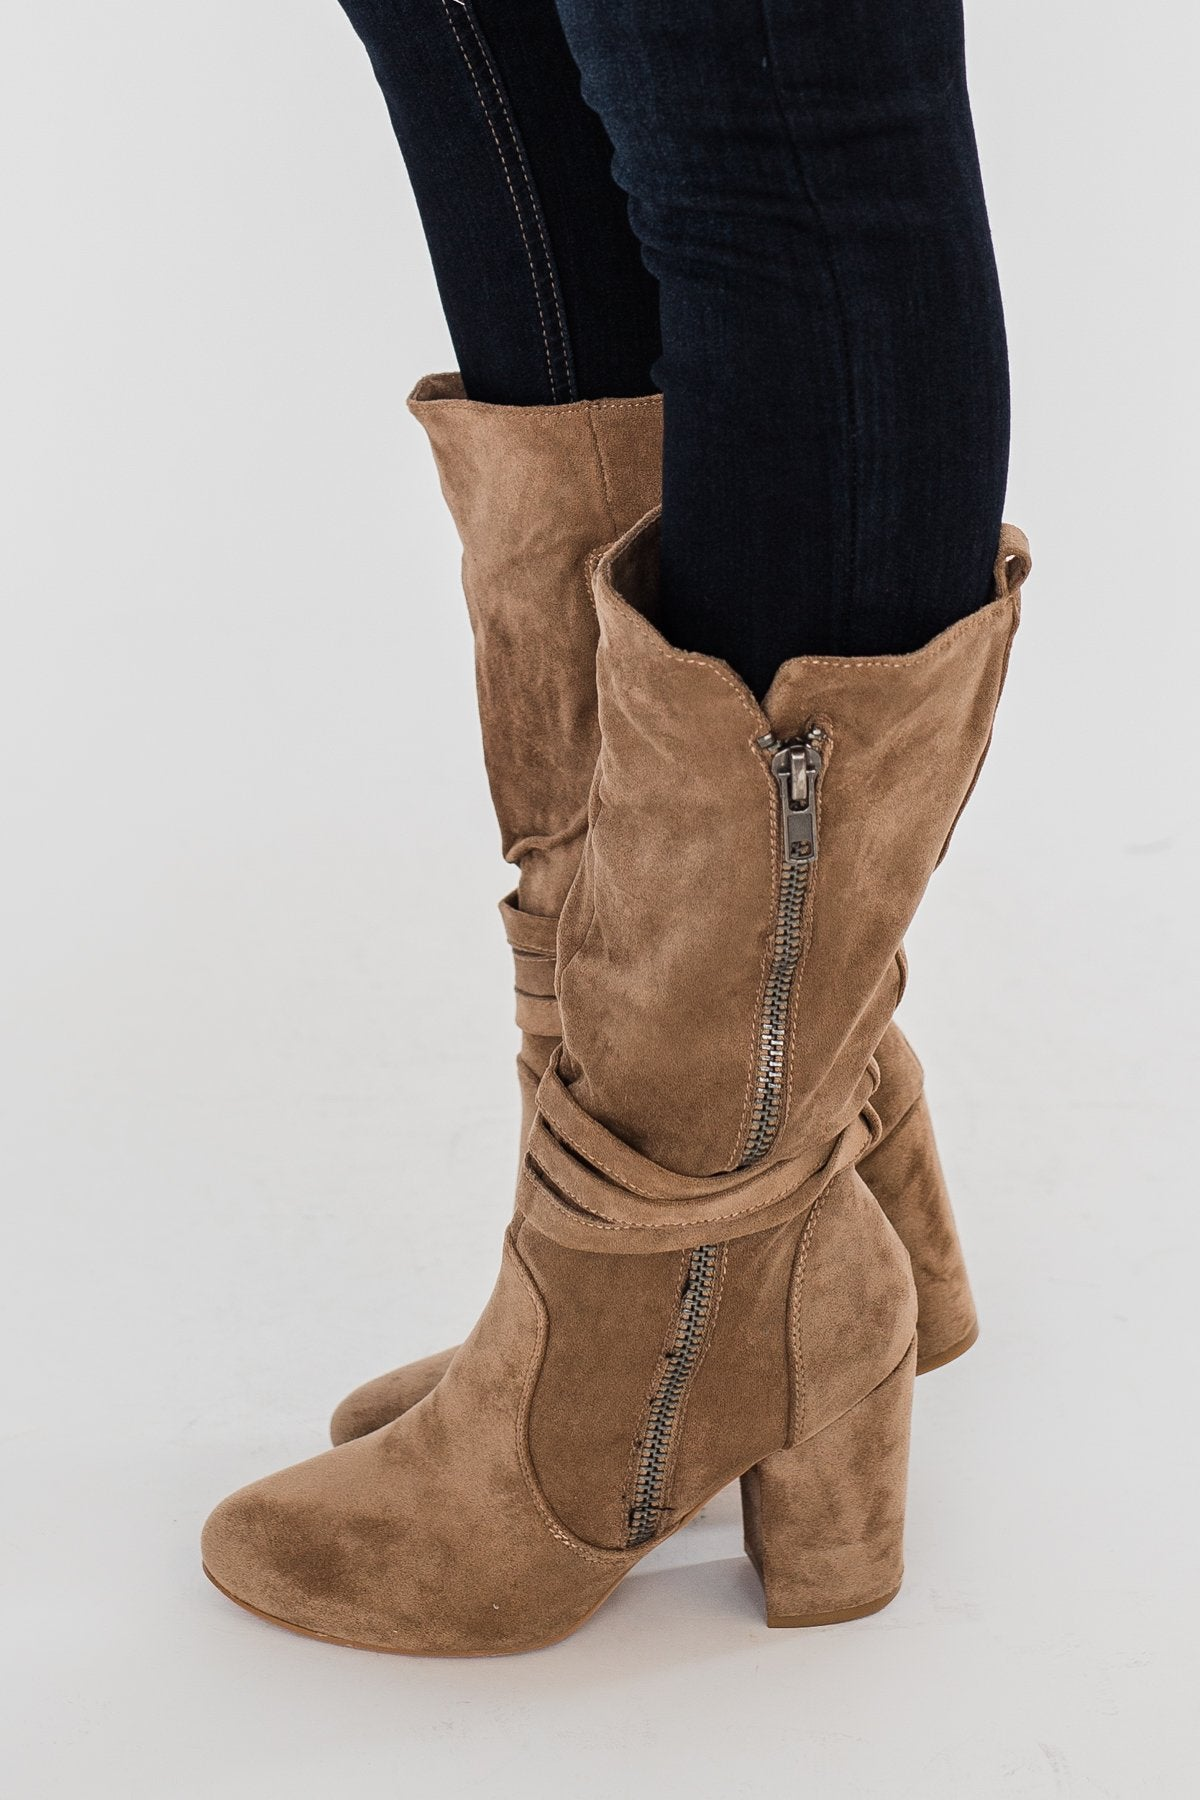 Very G Busy B Boots- Camel